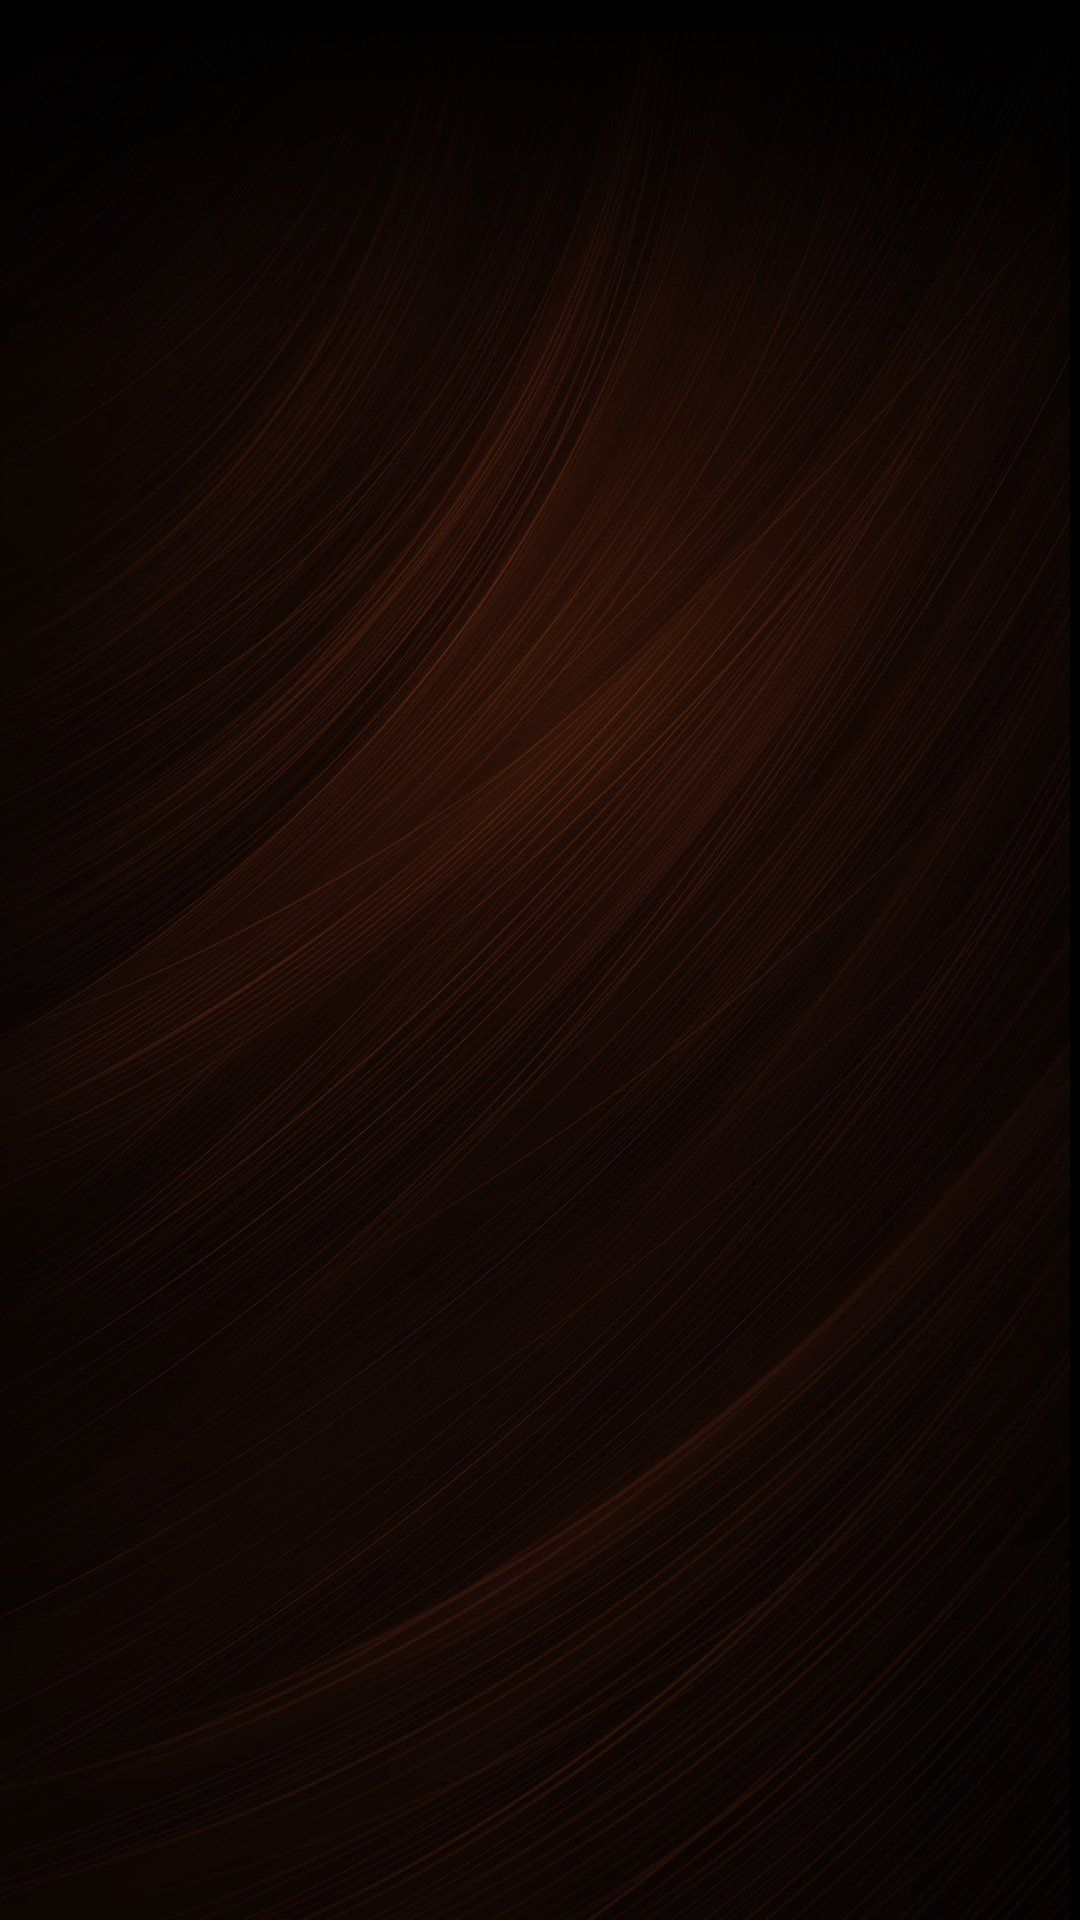 Dark Abstract Iphone Wallpapers Abstract Iphone Wallpaper Brown Wallpaper Iphone Wallpaper